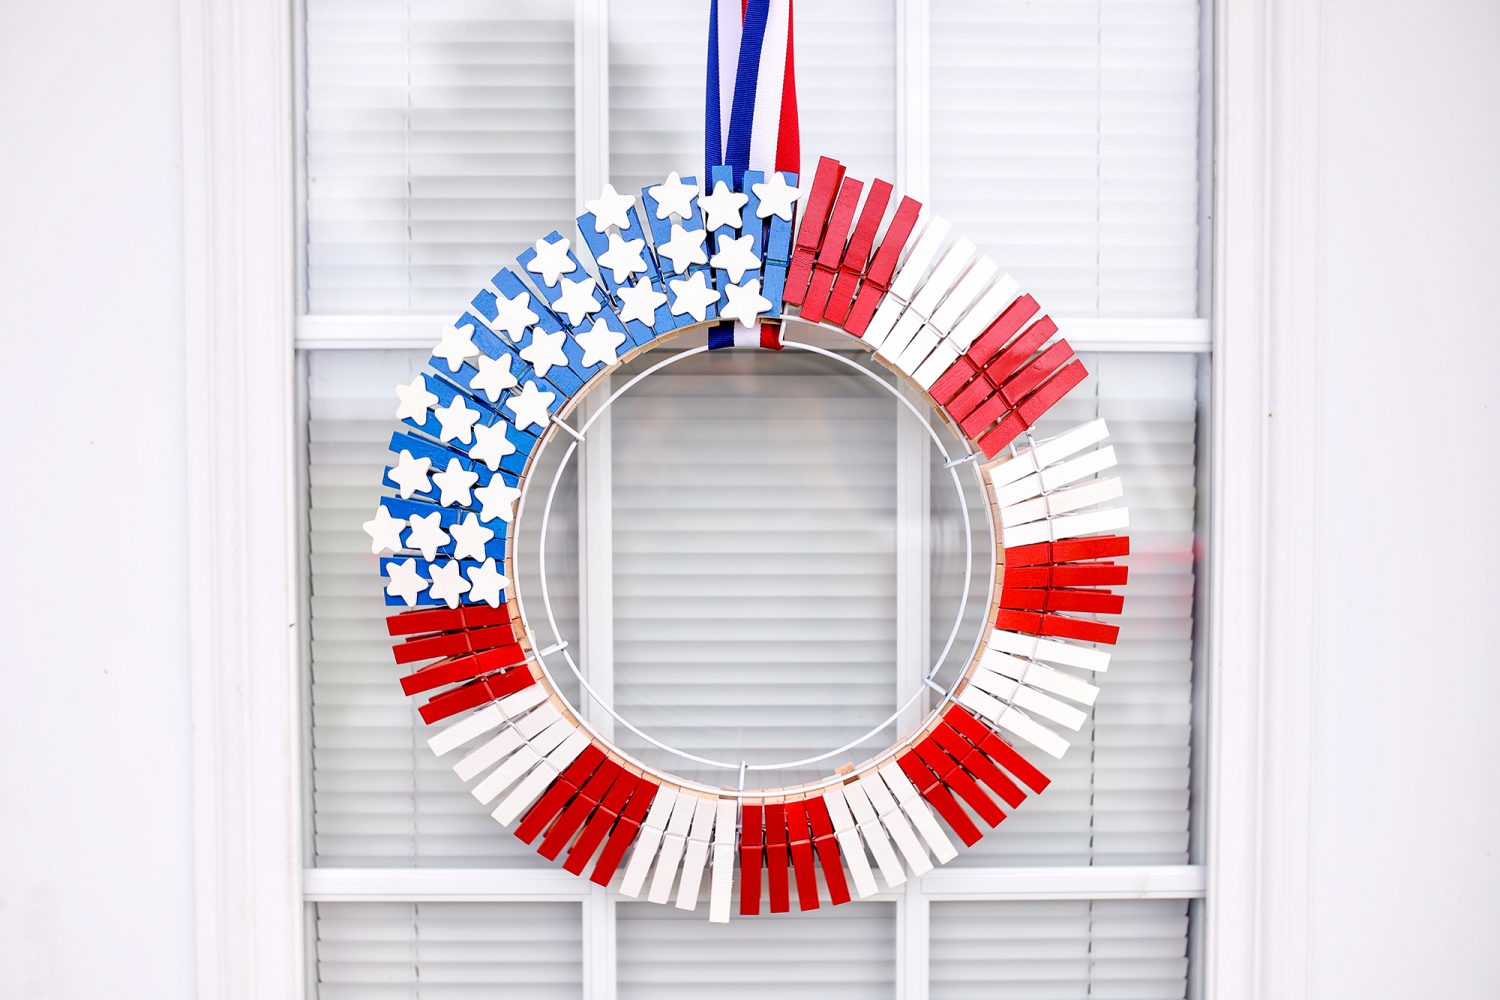 4th of July, easy, cheap, craft idea, USA, America, July 4th, Independence Day, American Flag, wreath, American Flag wreath, crafts, craft, crafts for independence day, crafts for 4th of july, crafts for july 4th, kids, gift idea, diy, kids craft, crafts for kids